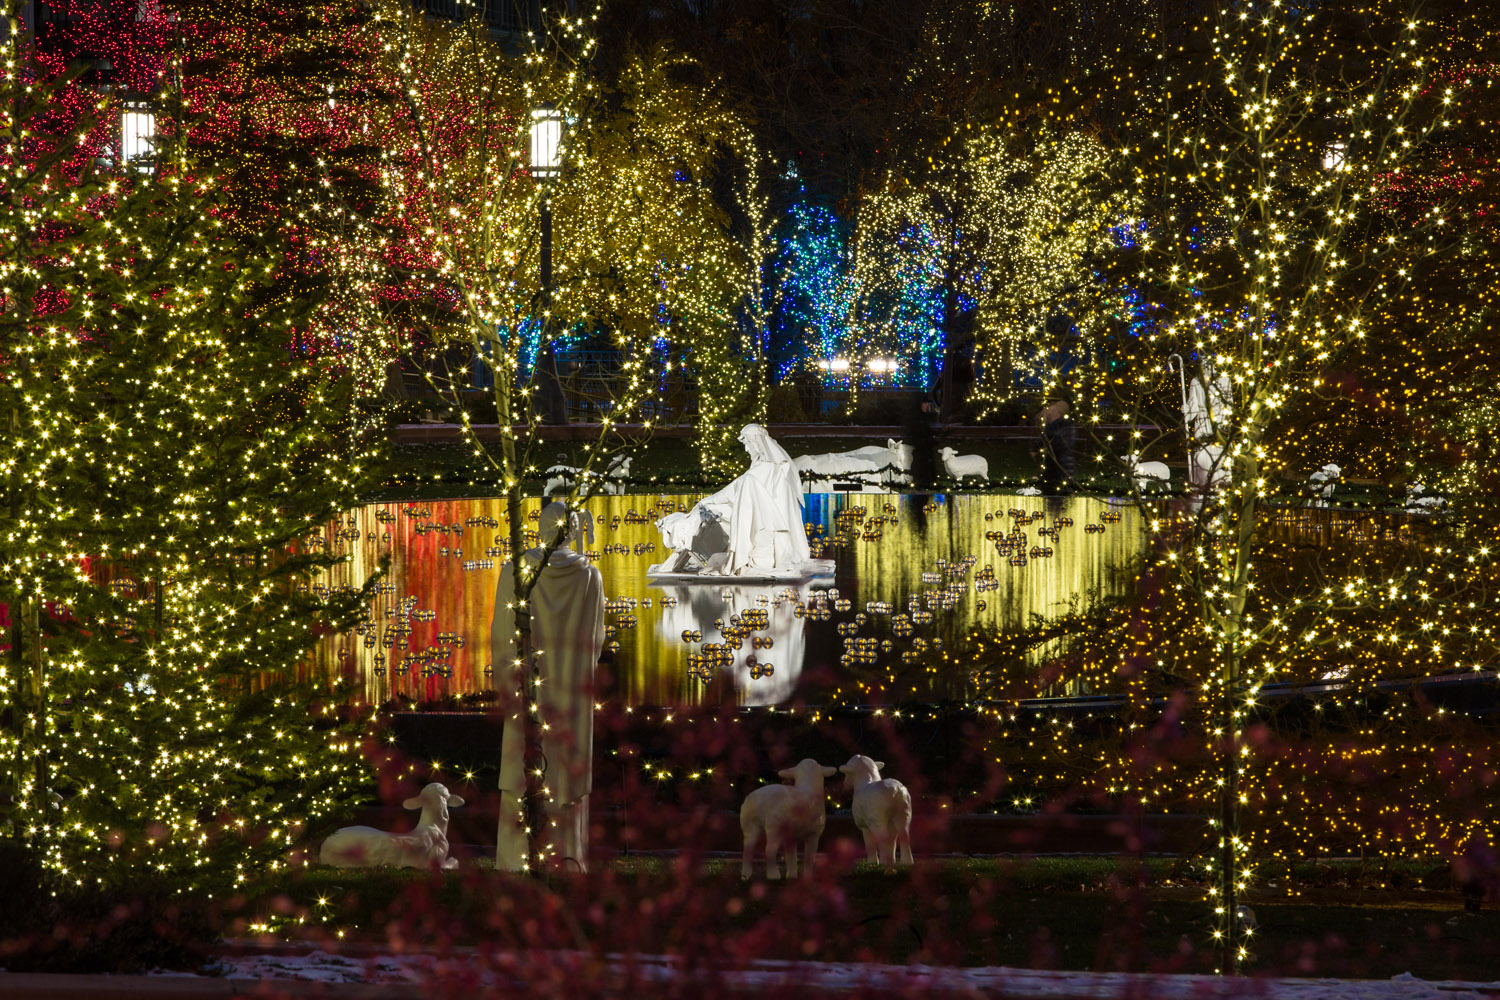 Temple-Square-Christmas-lights3-2015-resized.jpg